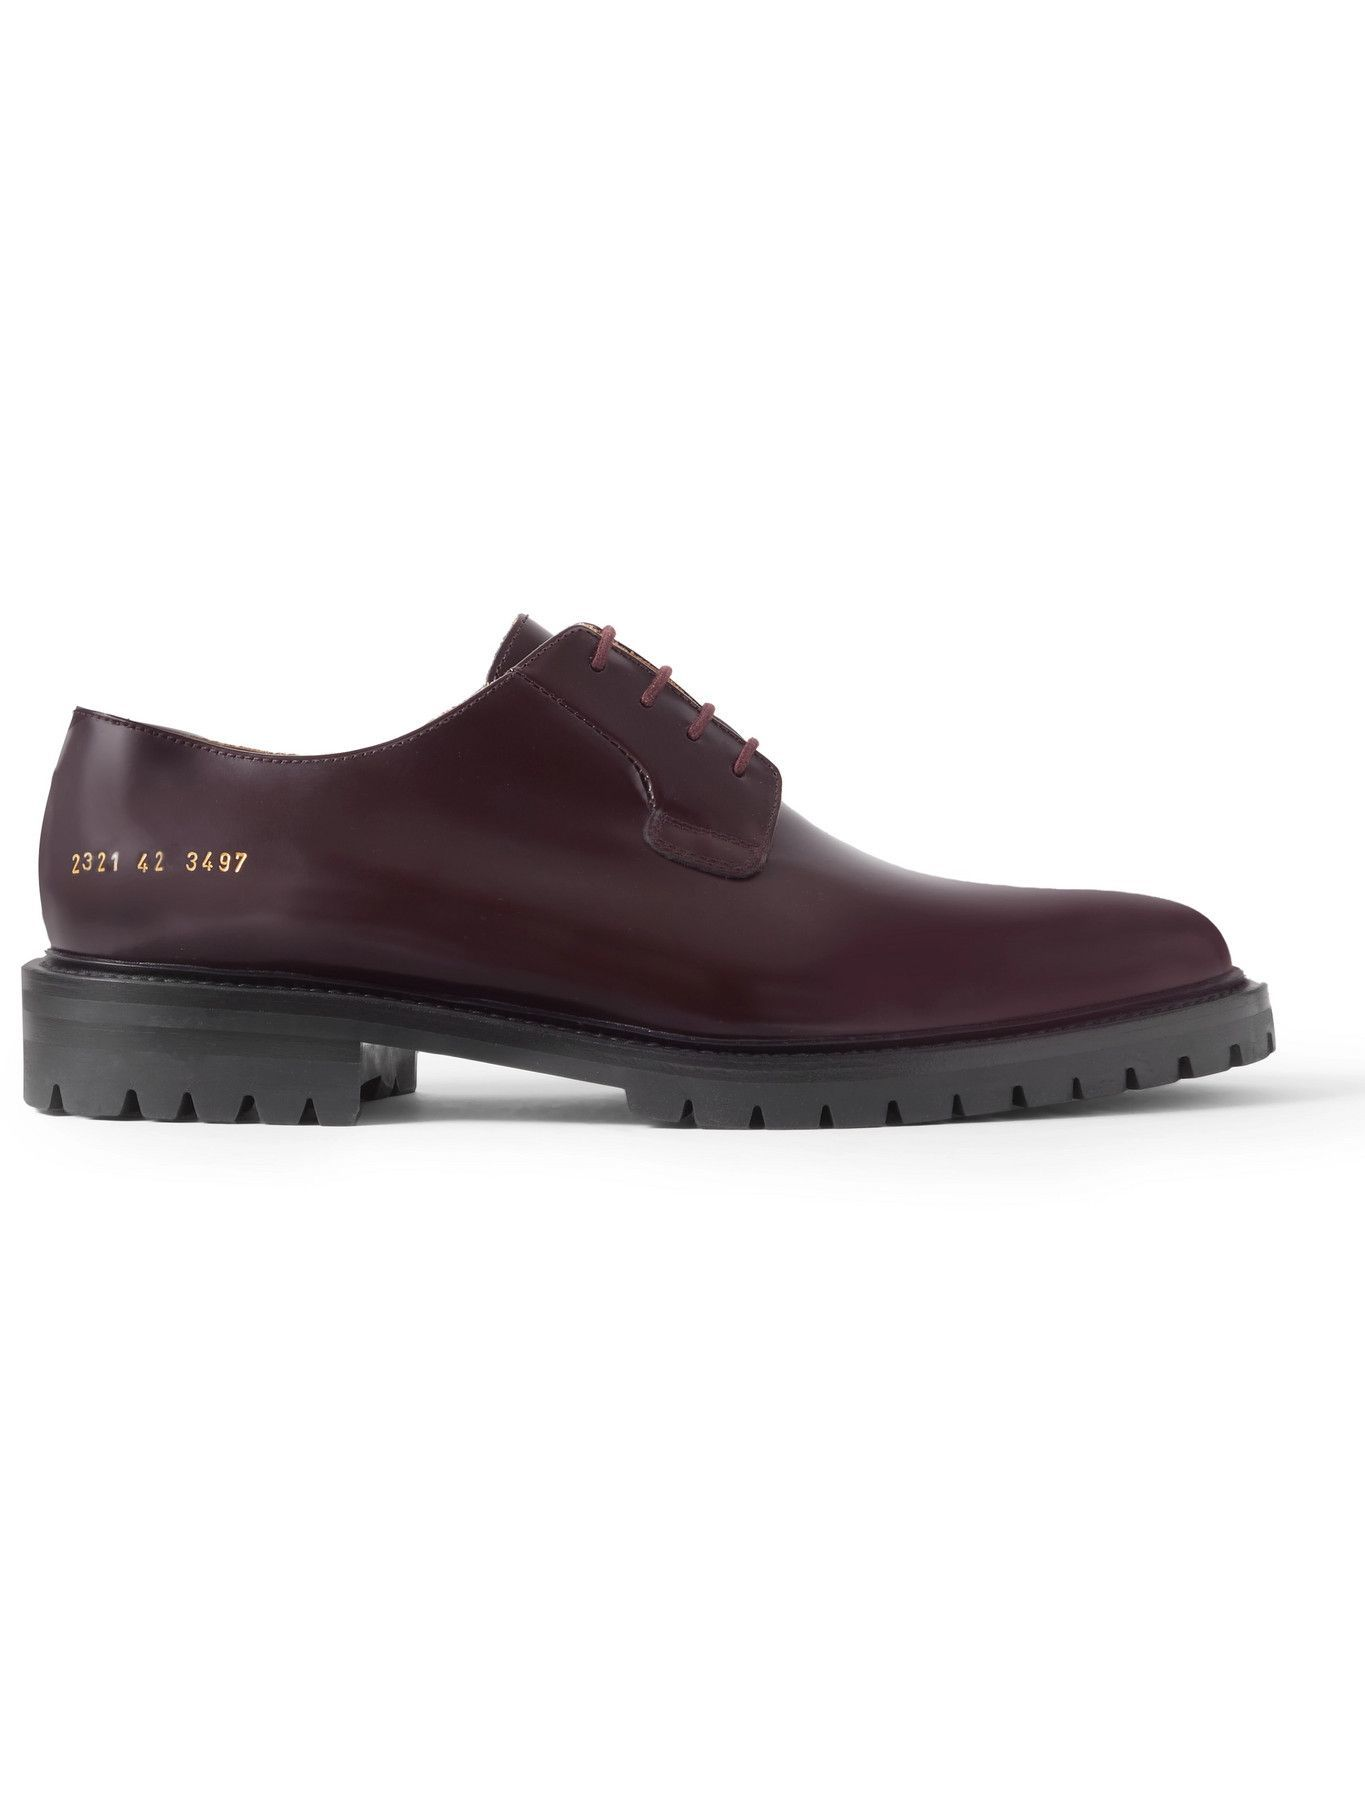 Common Projects - Leather Derby Shoes - Burgundy